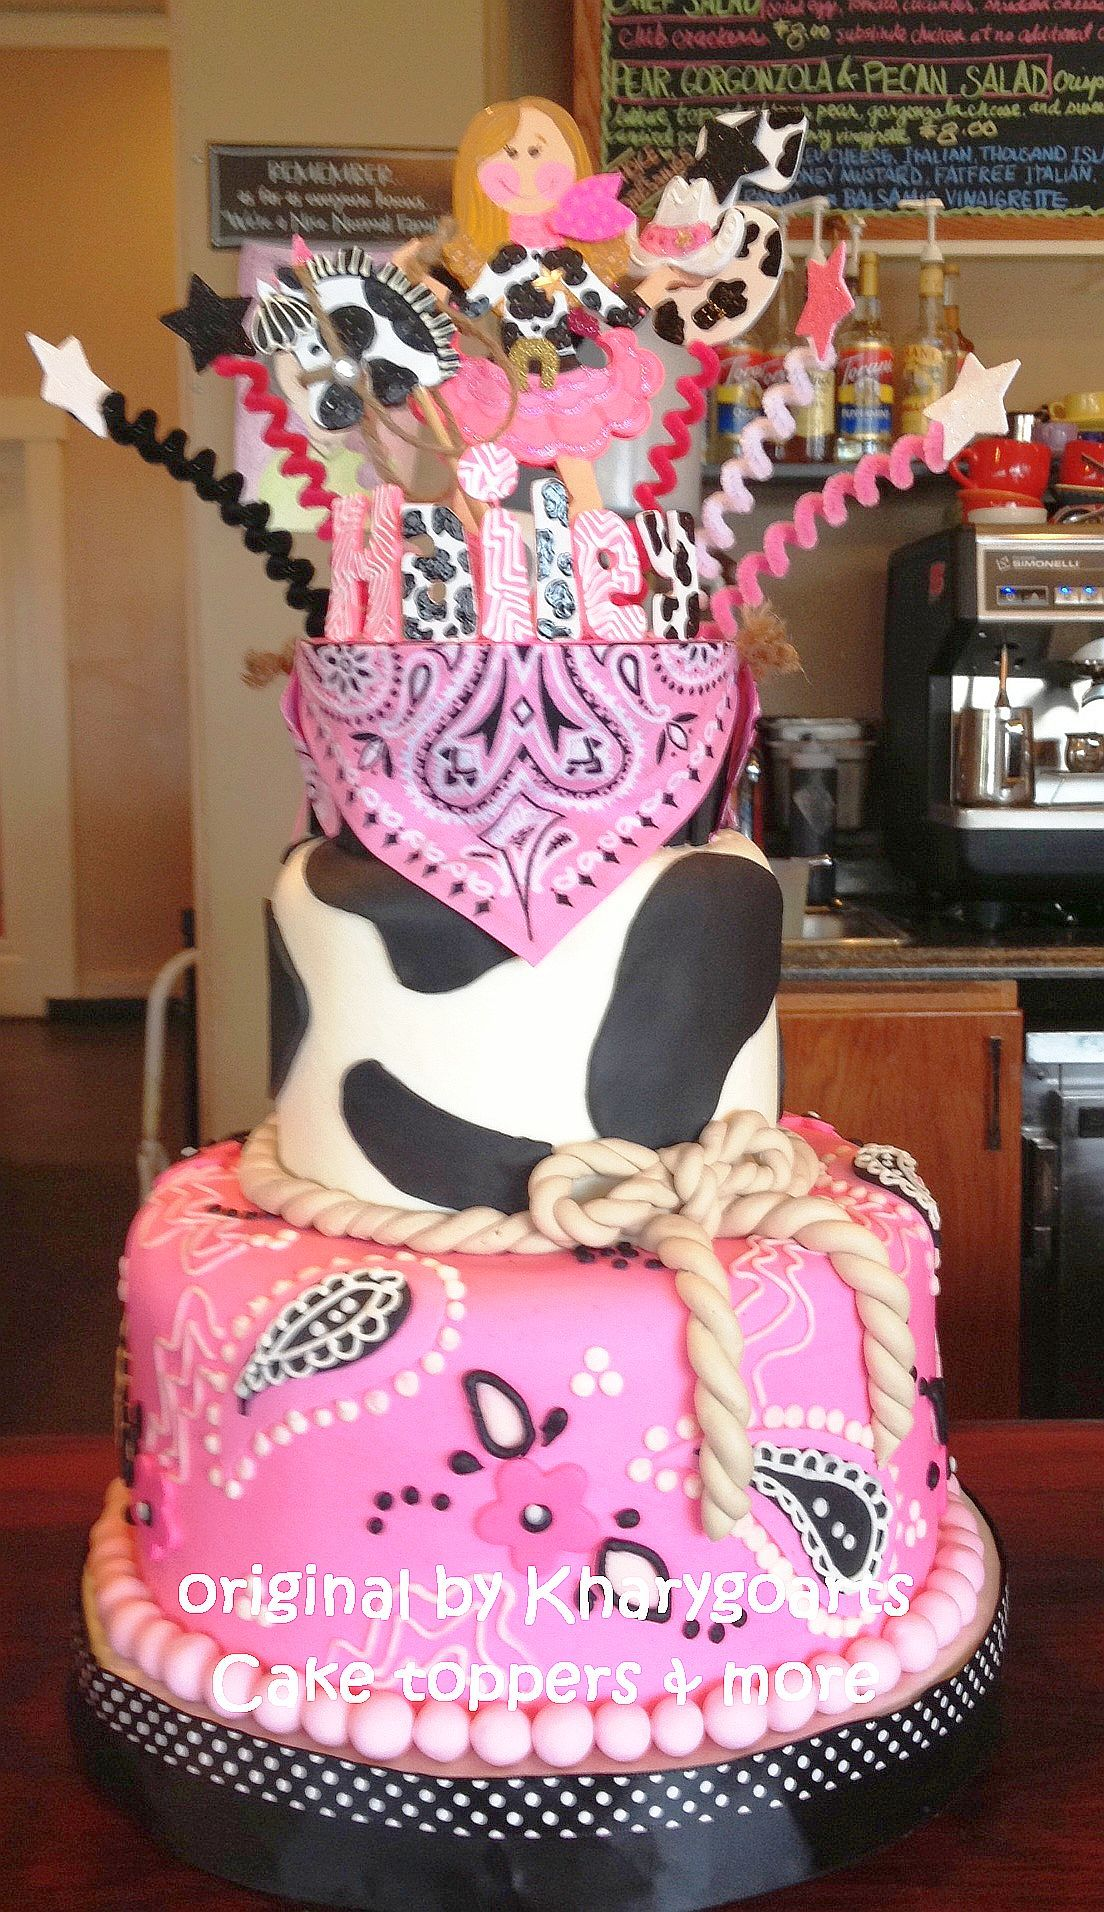 Enjoyable Birthday Cake Topper Cowgirl Cowboy Party Centerpiece Cowgirl Personalised Birthday Cards Sponlily Jamesorg